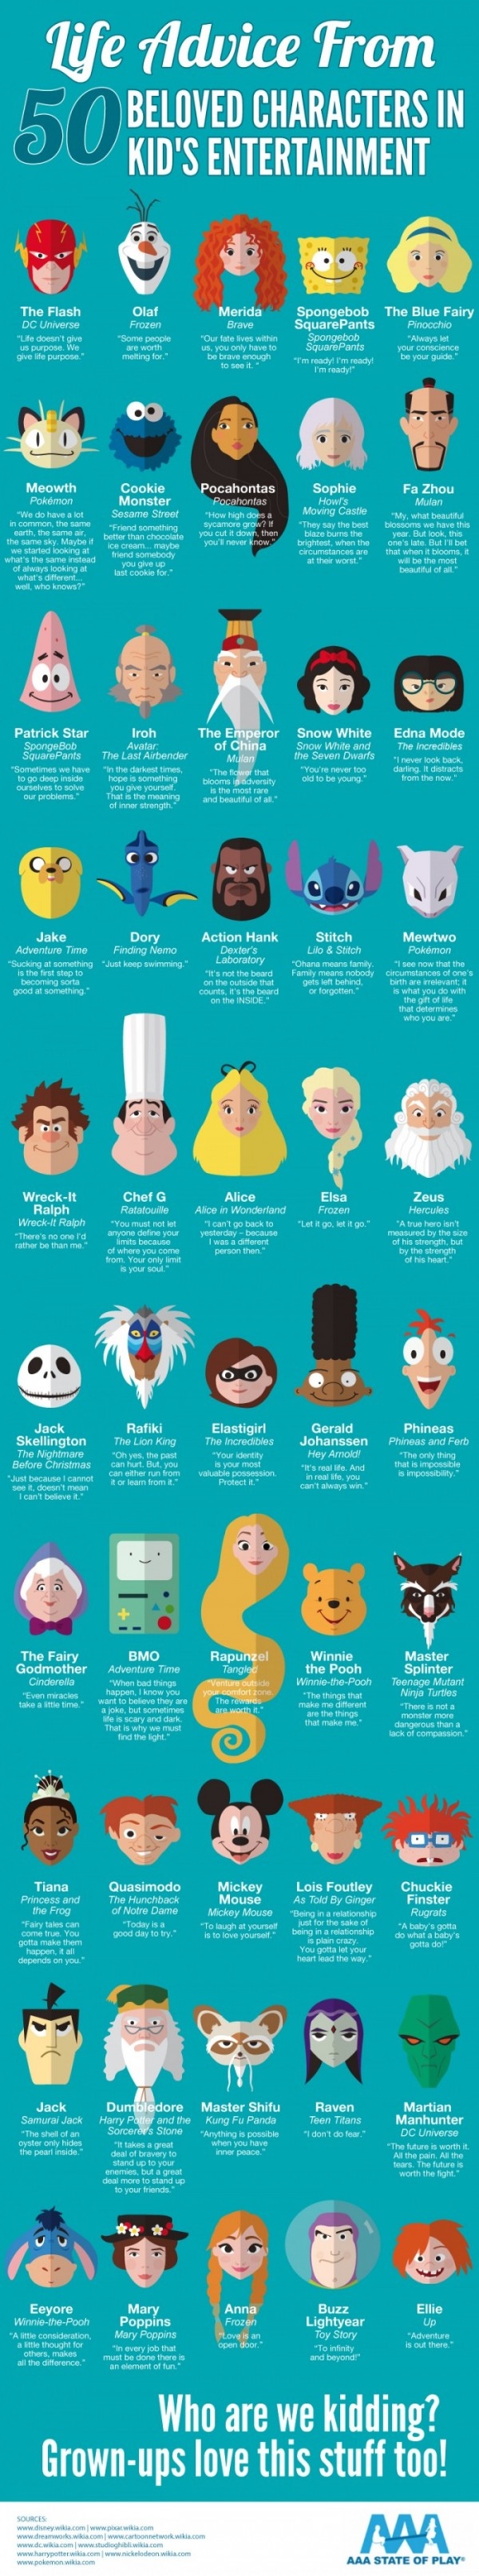 life-advice-from-50-beloved-characters-in-kids-entertainment